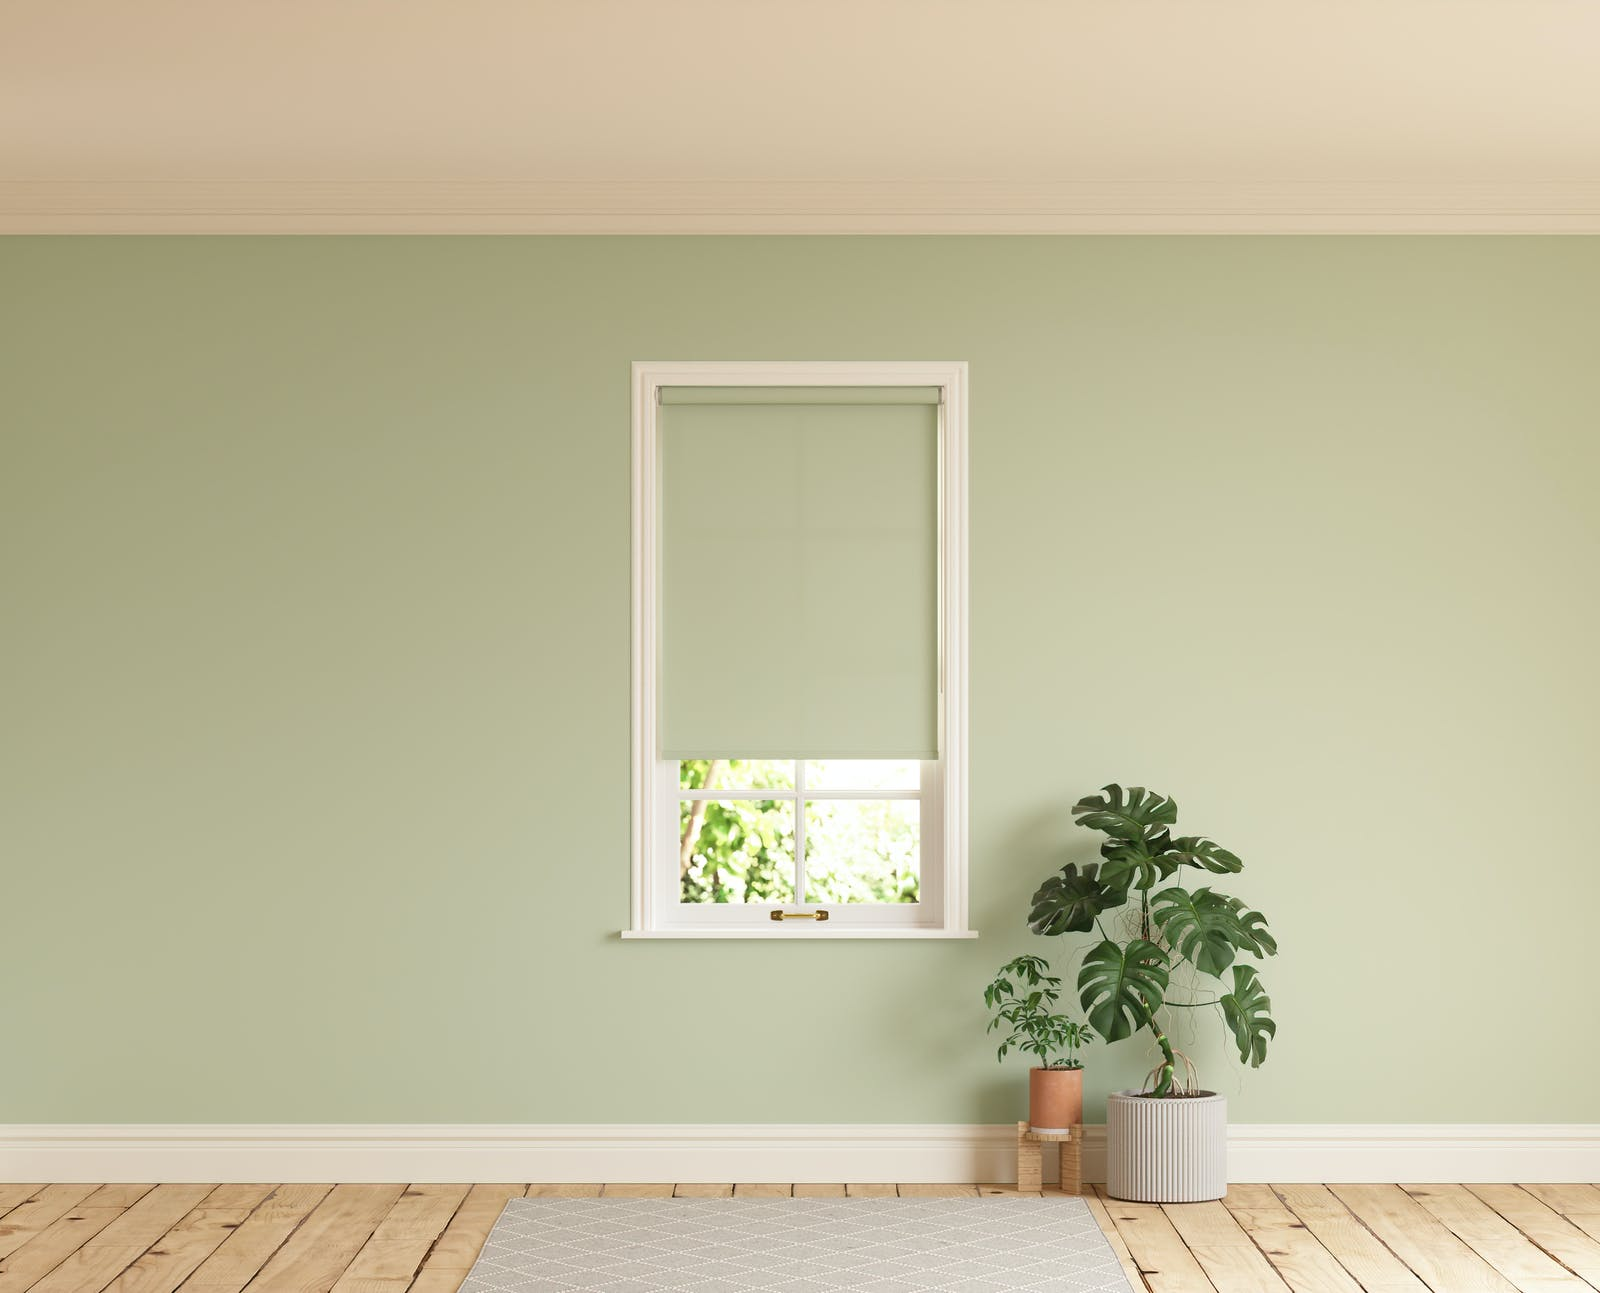 Room with walls painted in Lick Green 01 and Green 01 roller blinds